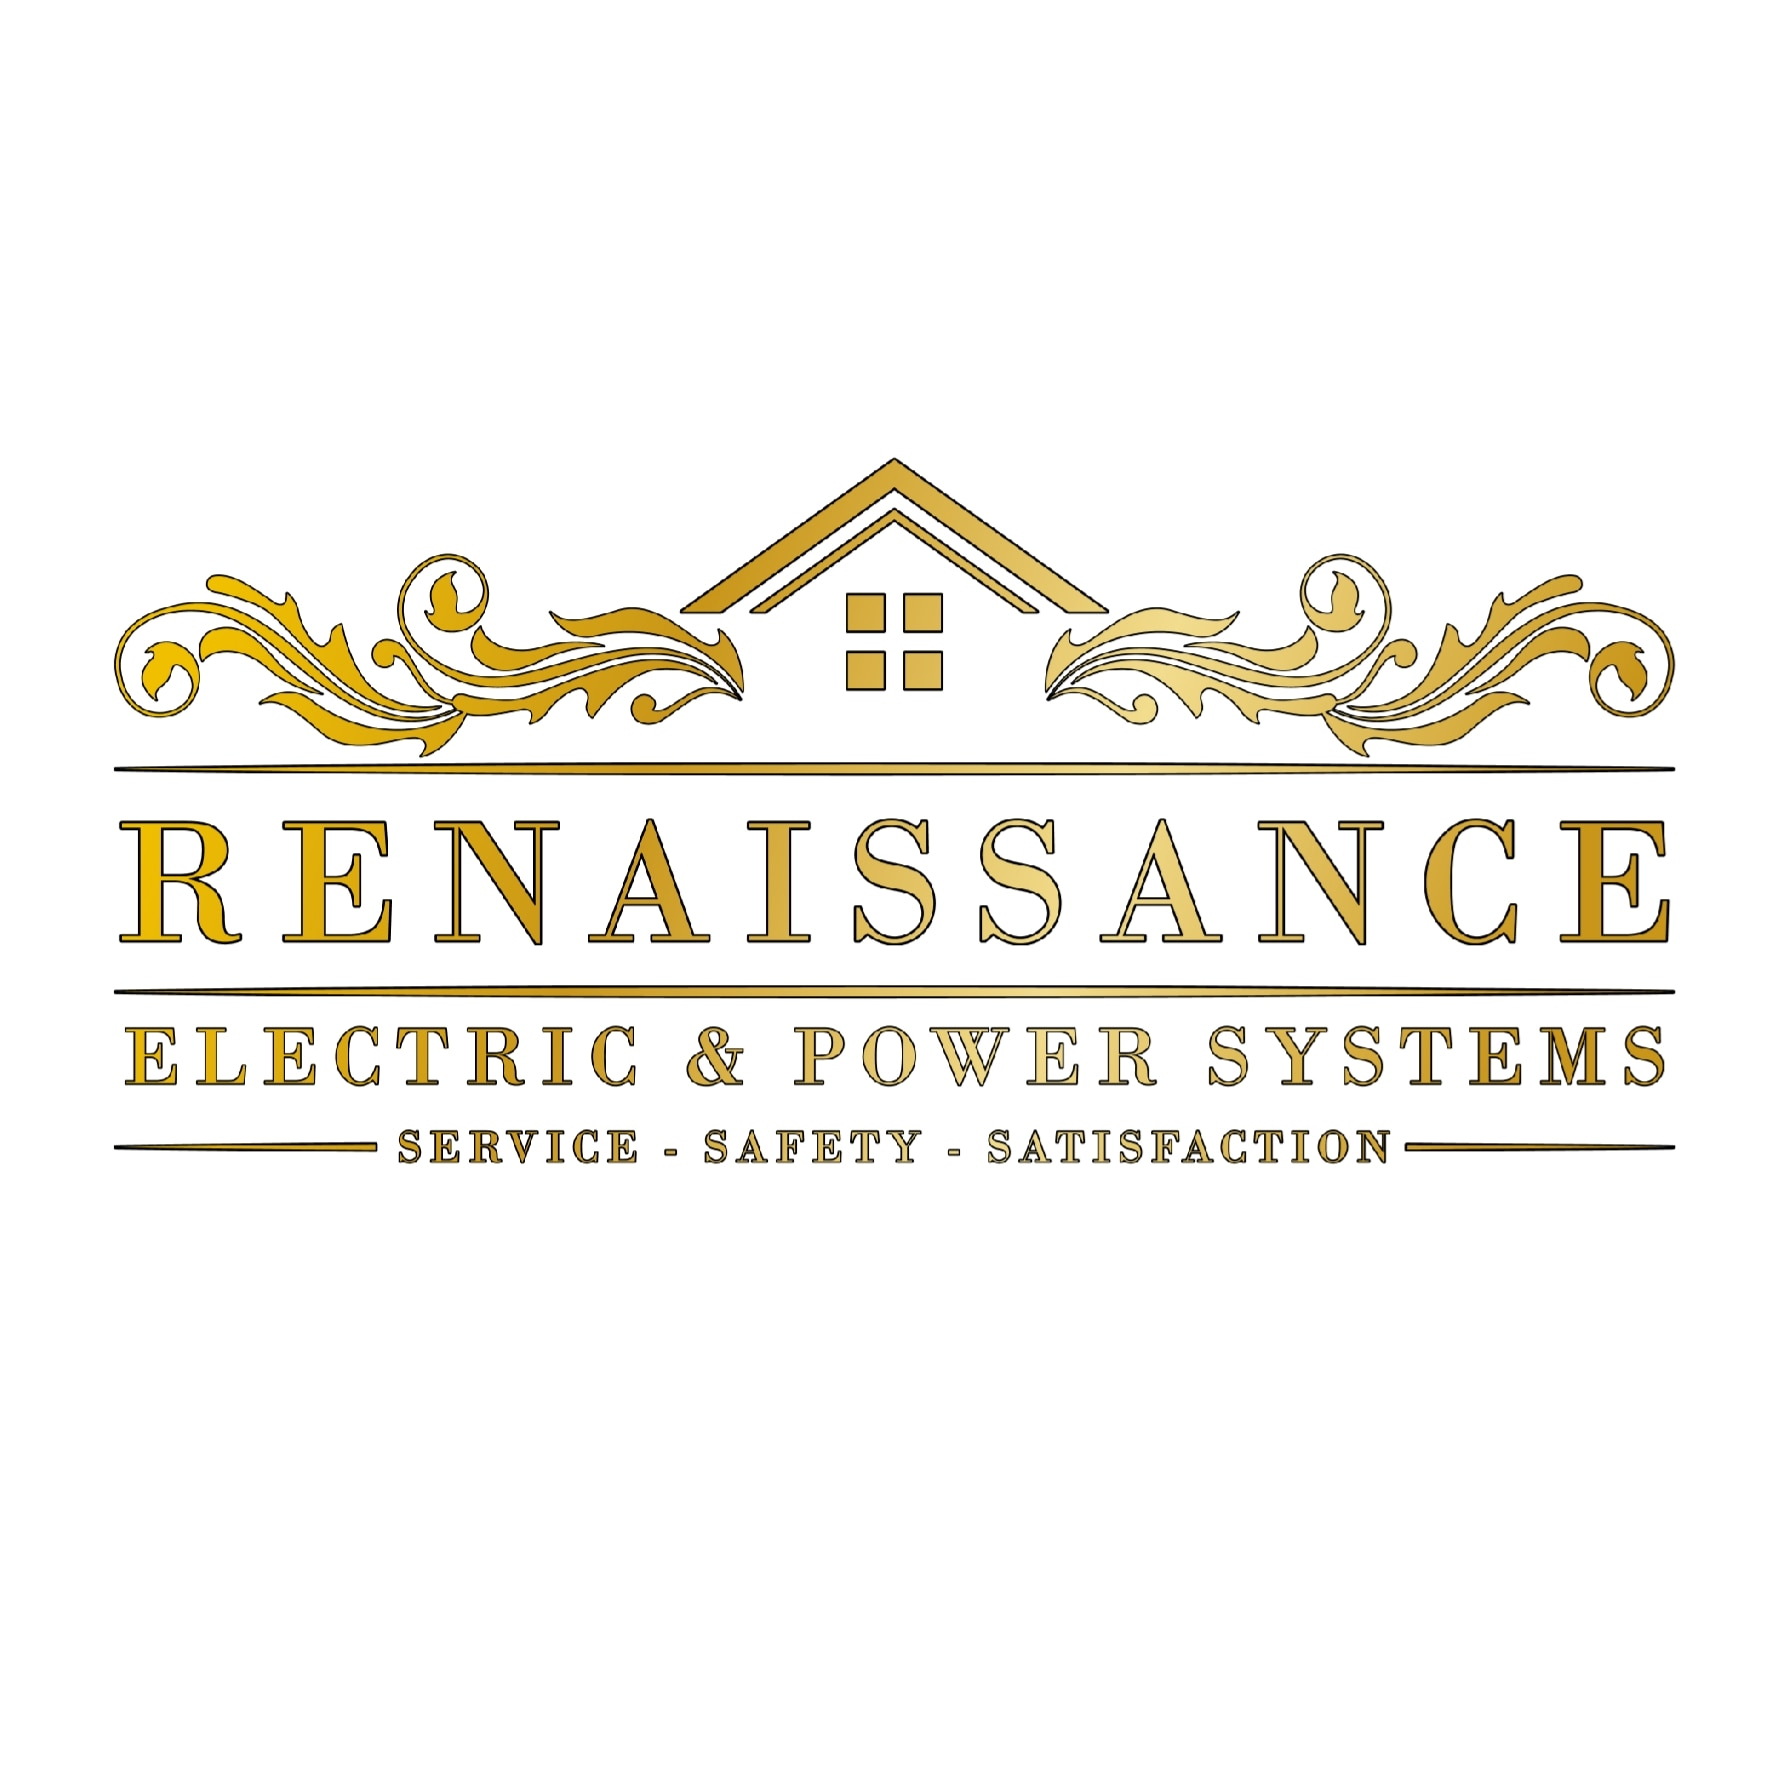 Renaissance Electric and Power Systems logo